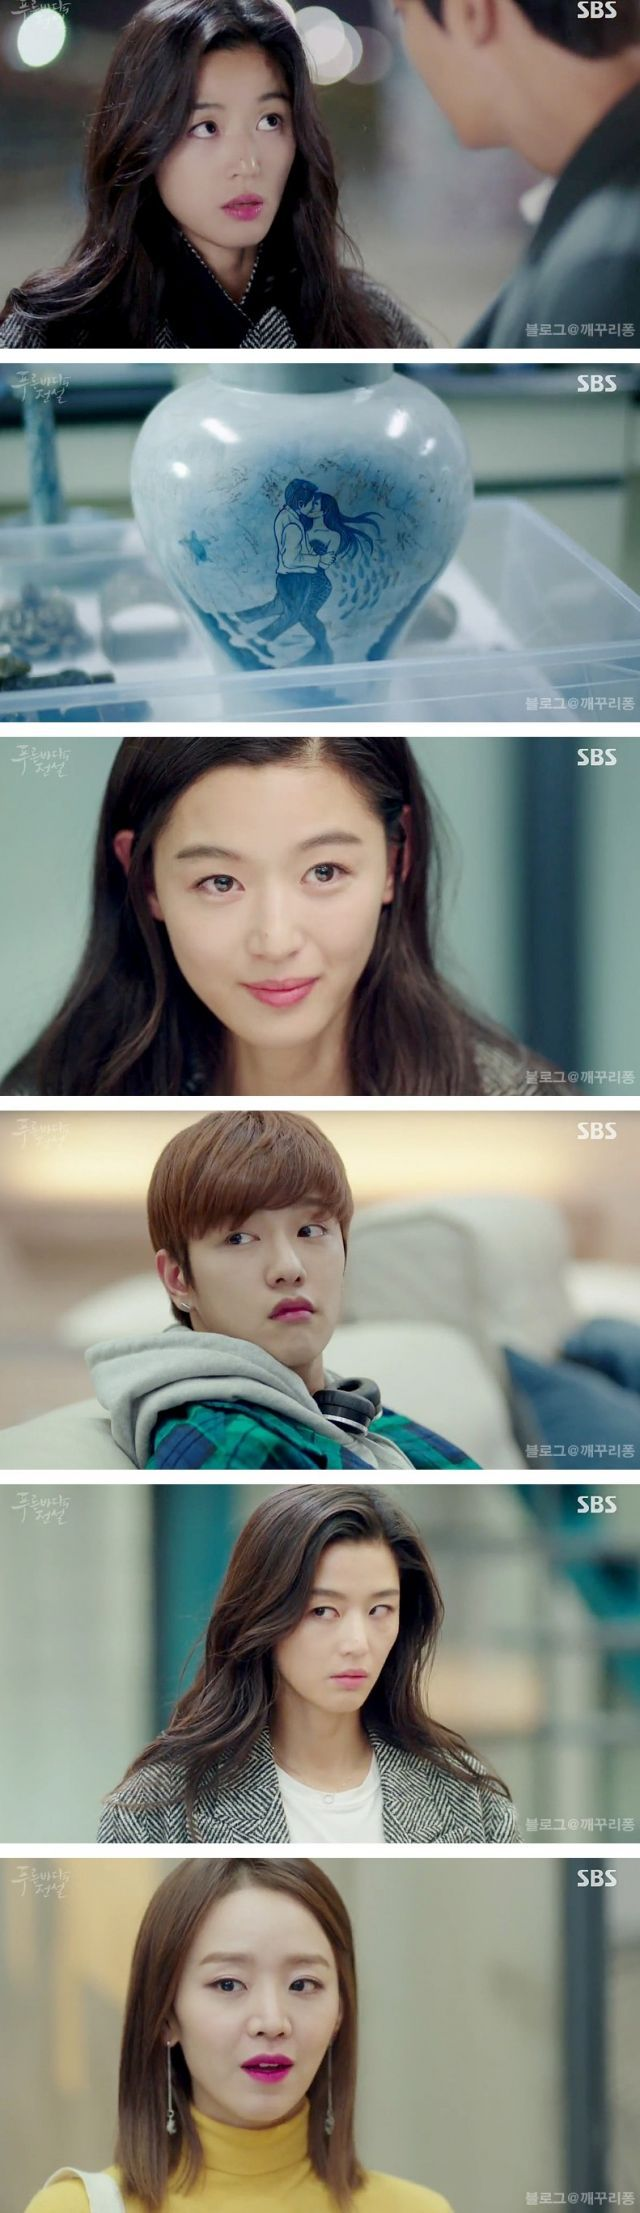 [Spoiler] Added episode 4 captures for the #kdrama 'The Legend of the Blue Sea'